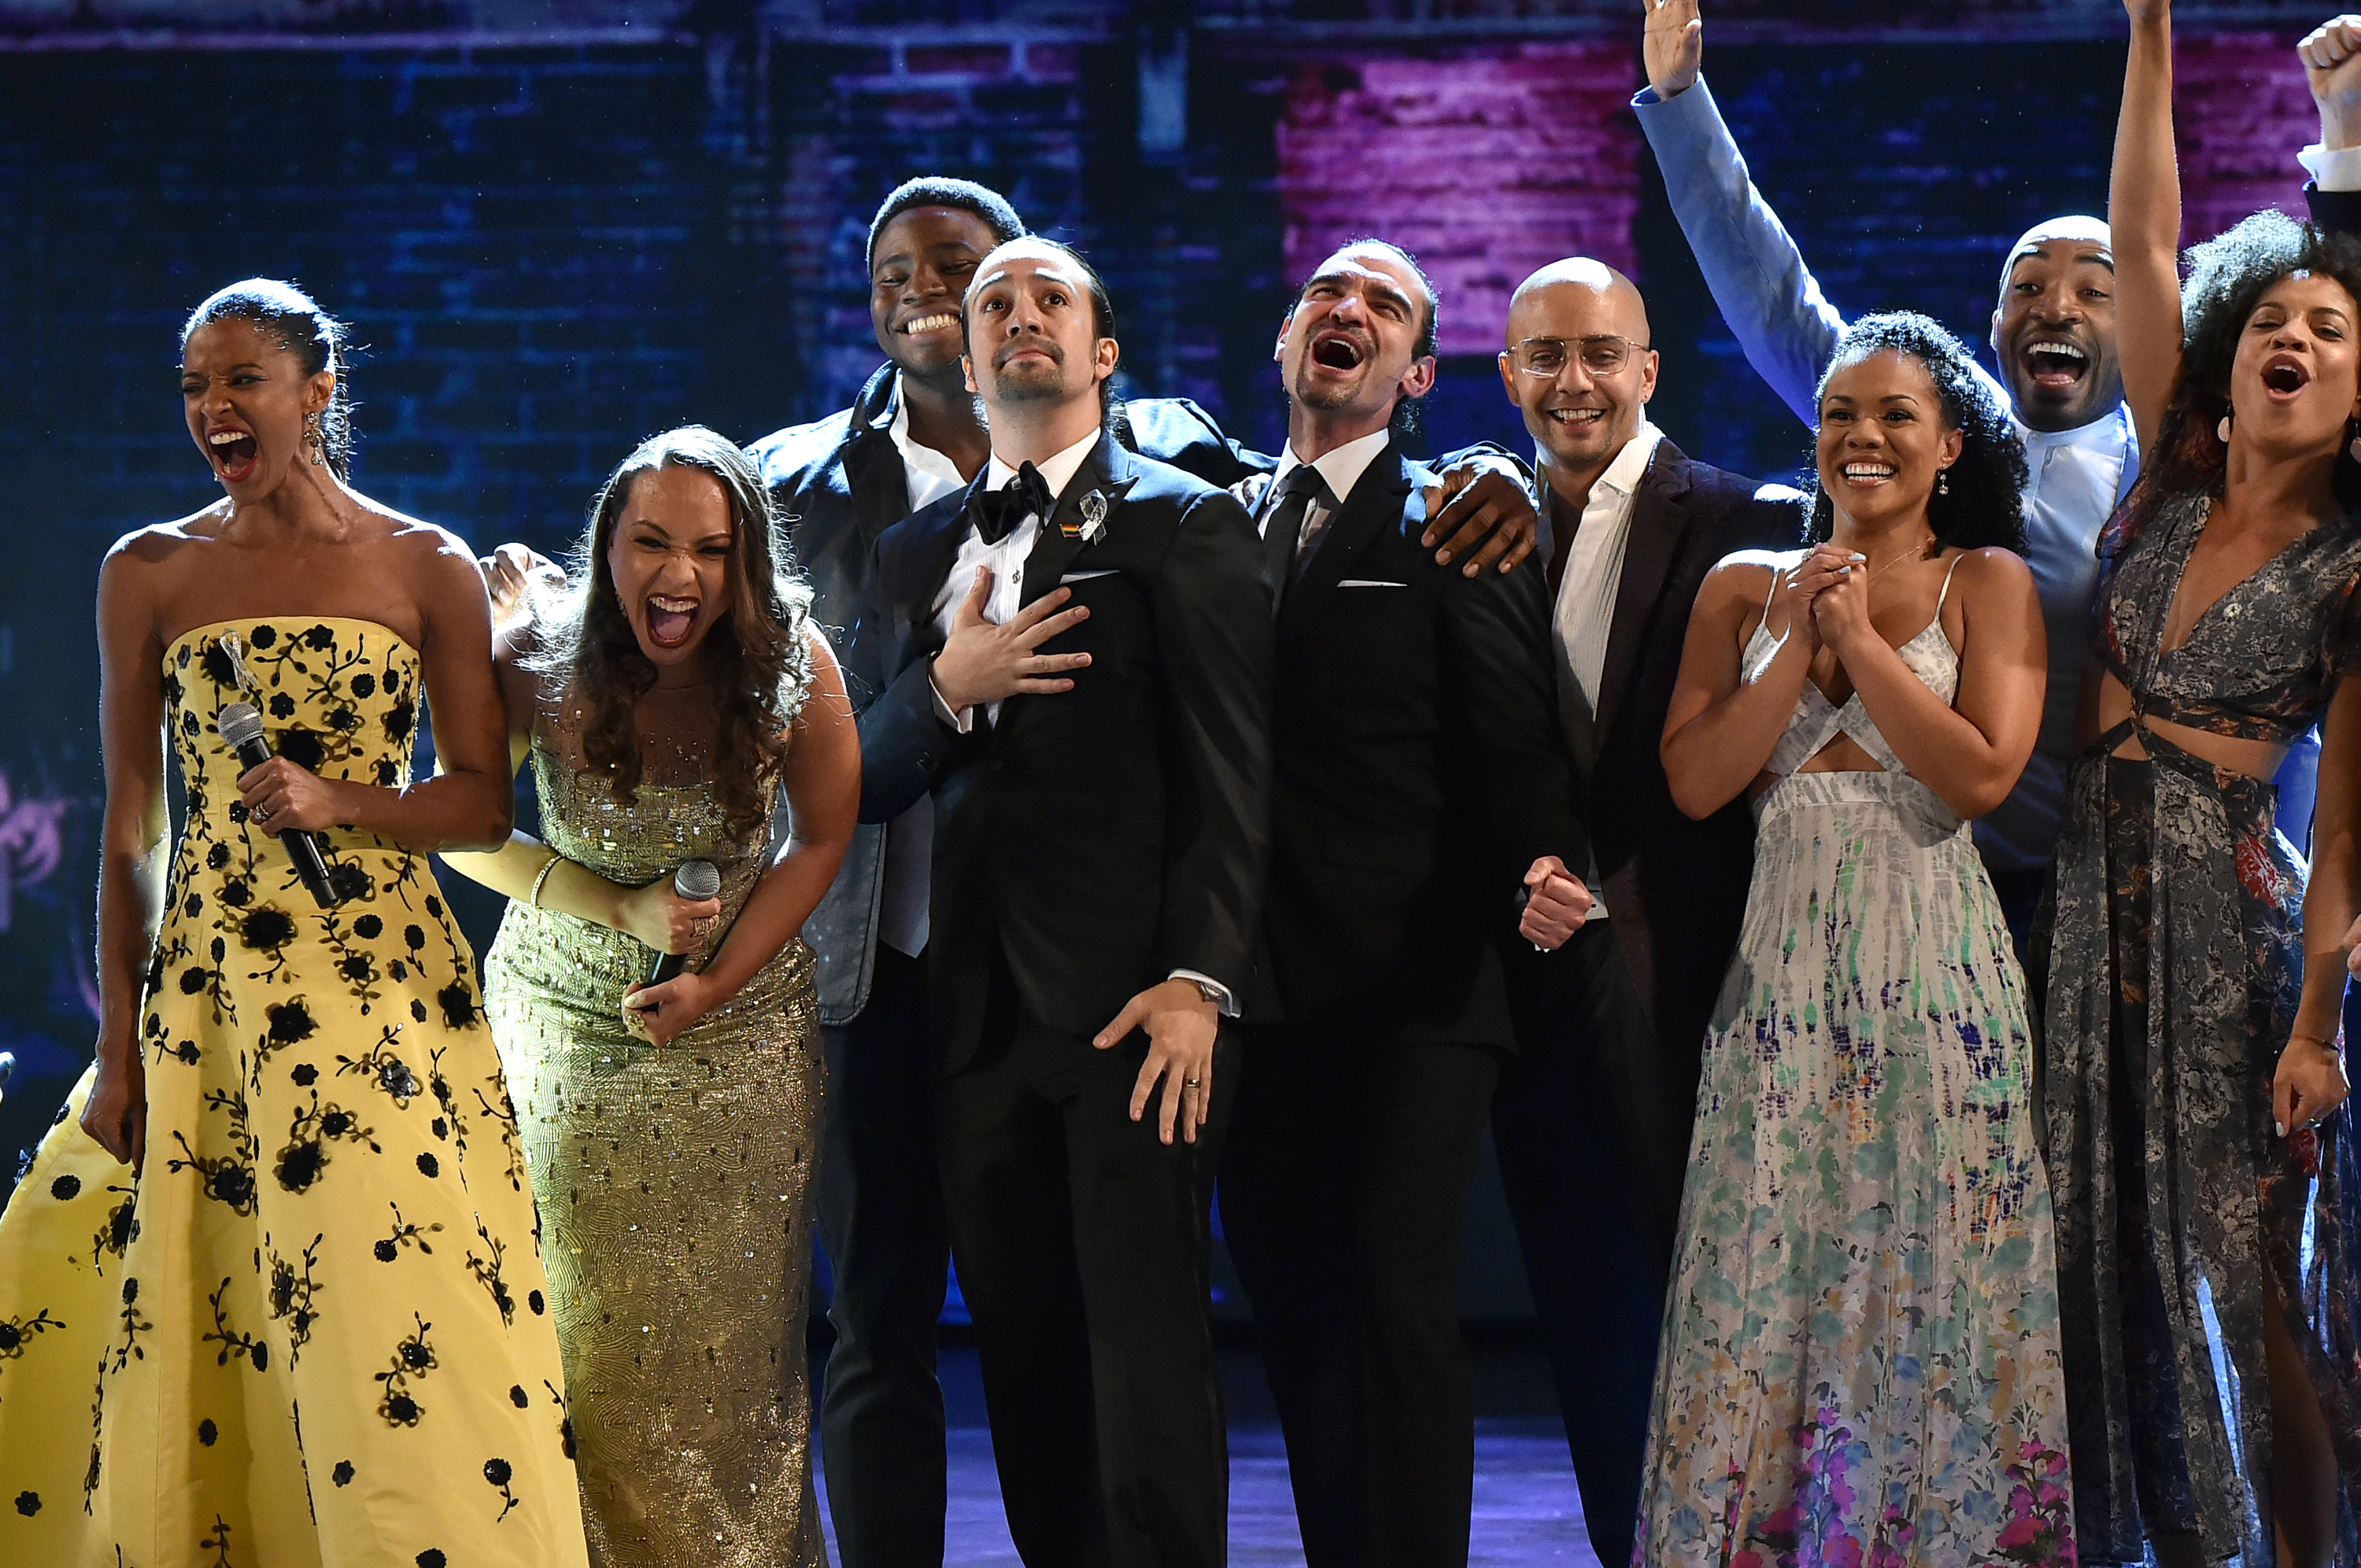 """NEW YORK, NY - JUNE 12: The cast of \""""Hamilton\"""" performs onstage during the 70th Annual Tony Awards at The Beacon Theatre on June 12, 2016 in New York City. (Photo by Theo Wargo/Getty Images for Tony Awards Productions)"""